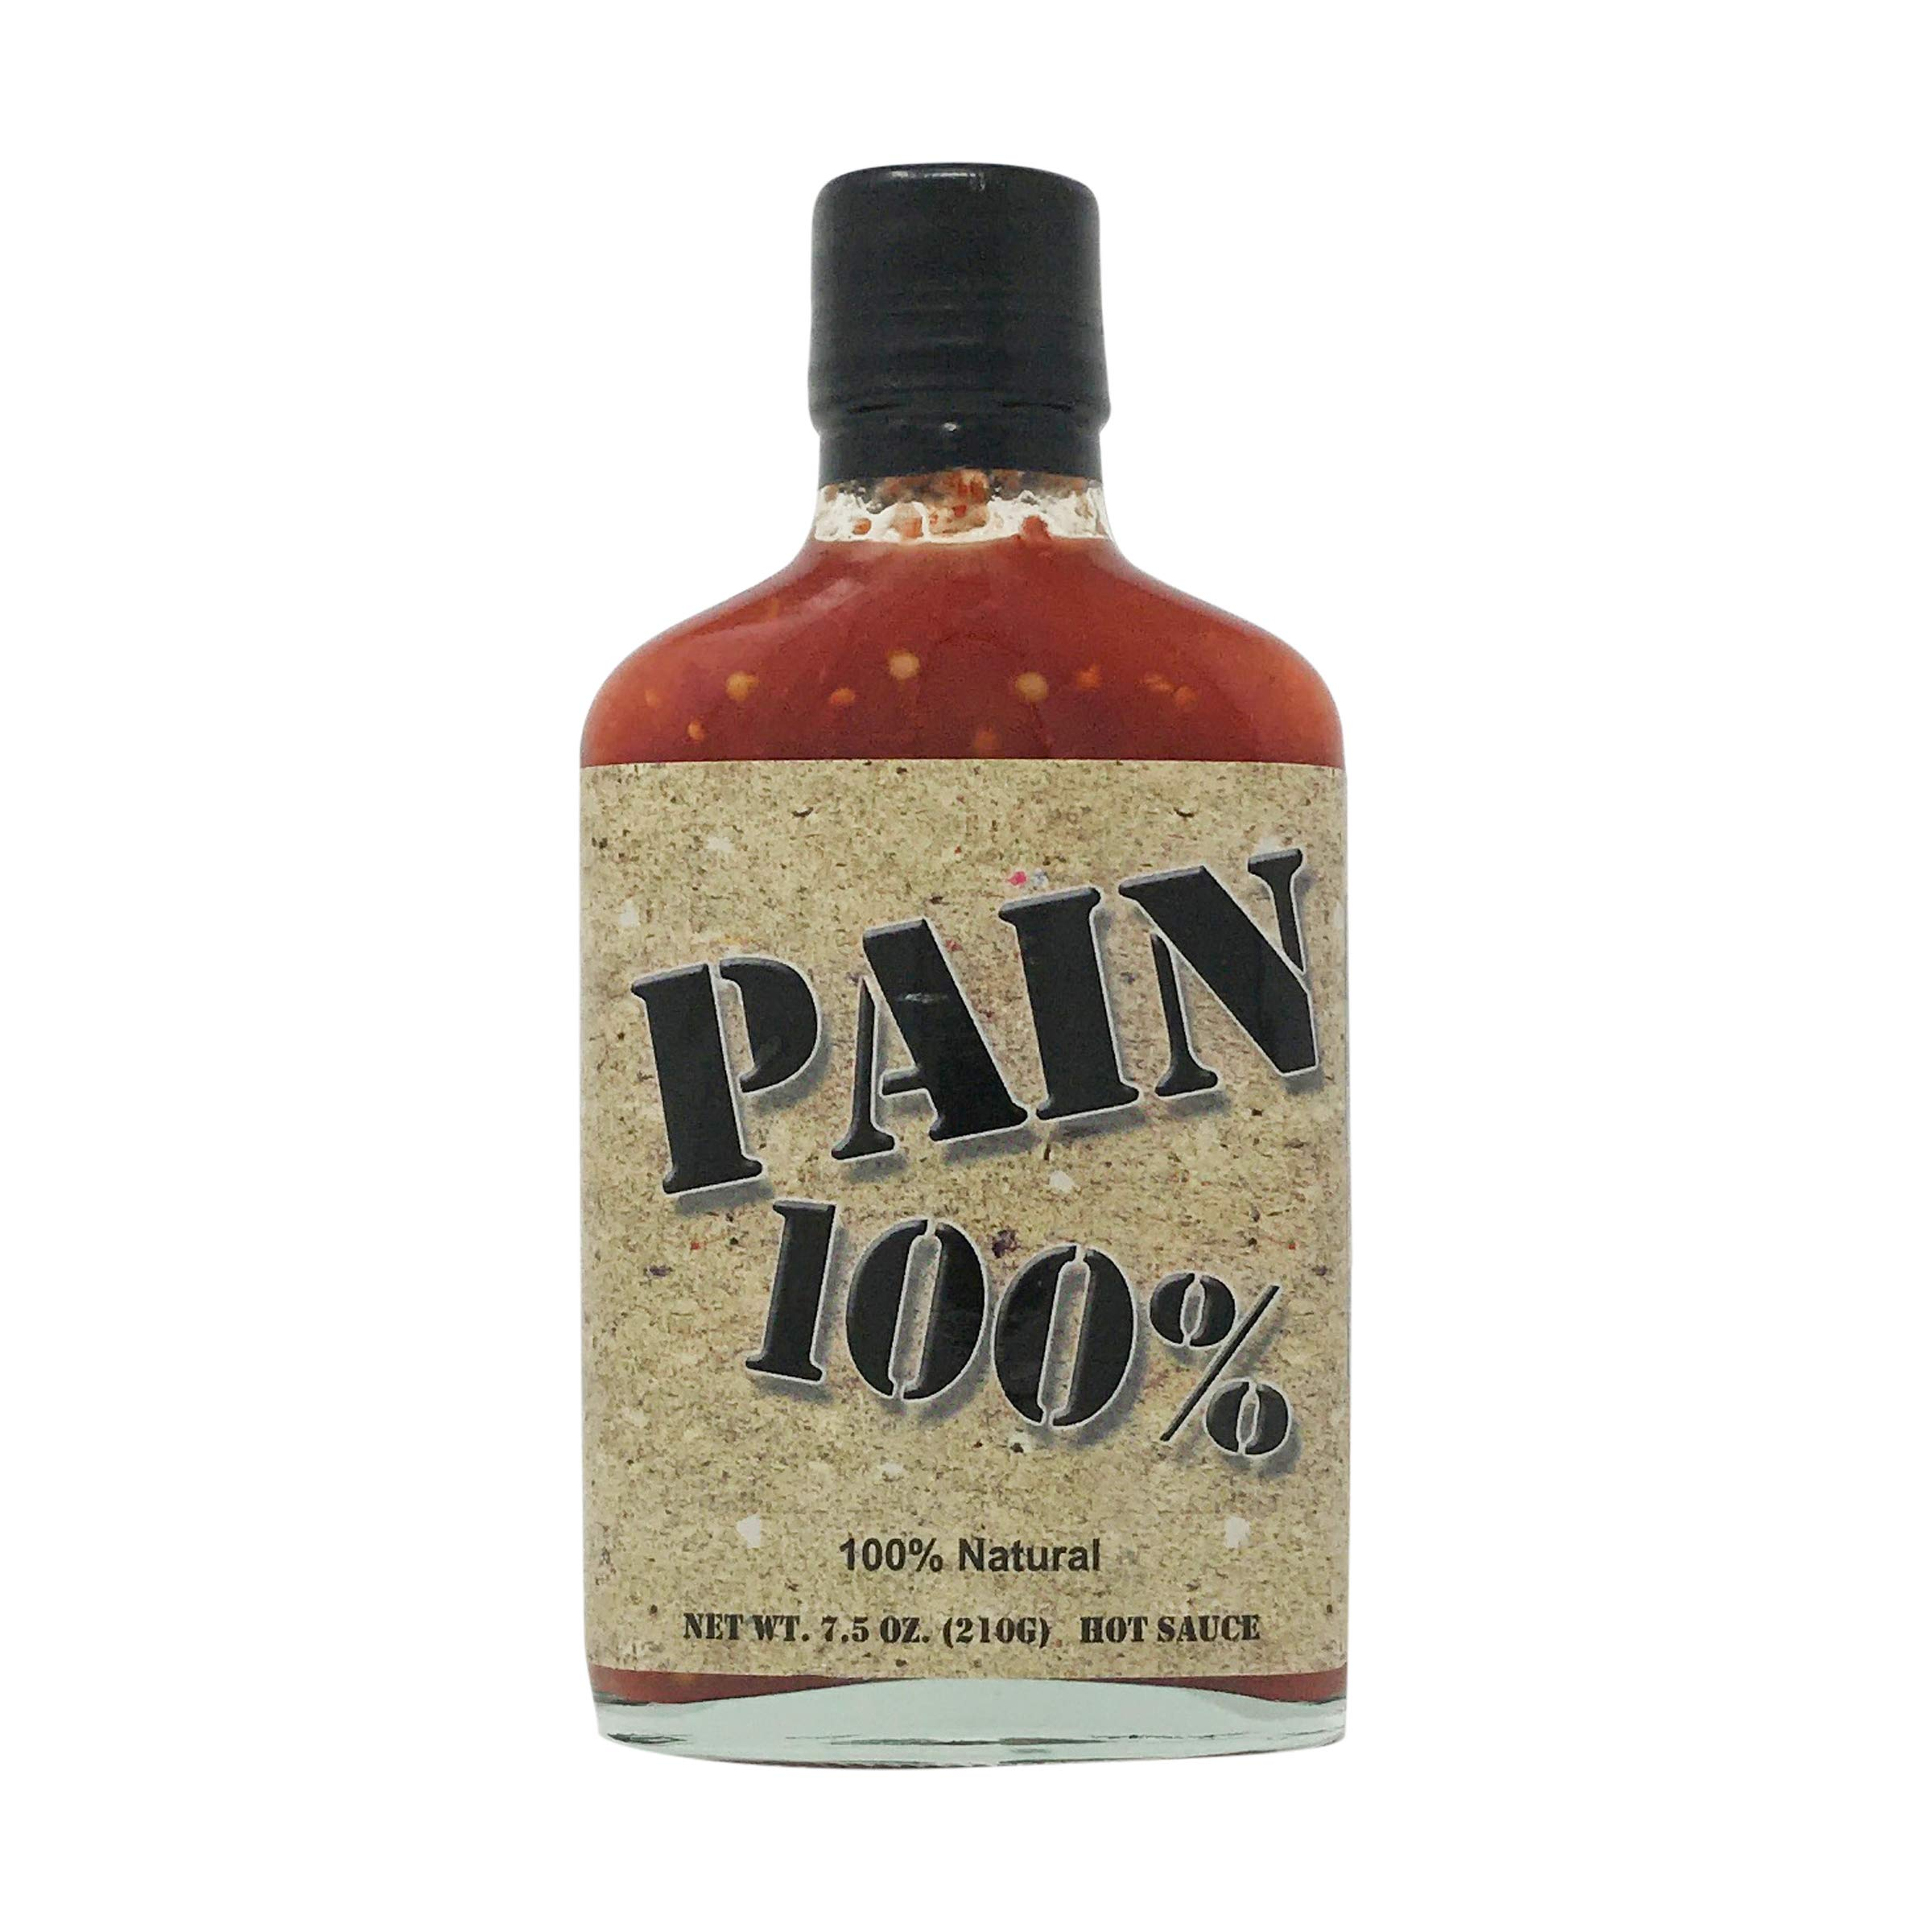 Pain 100% Hot Sauce 100% Natural 210g